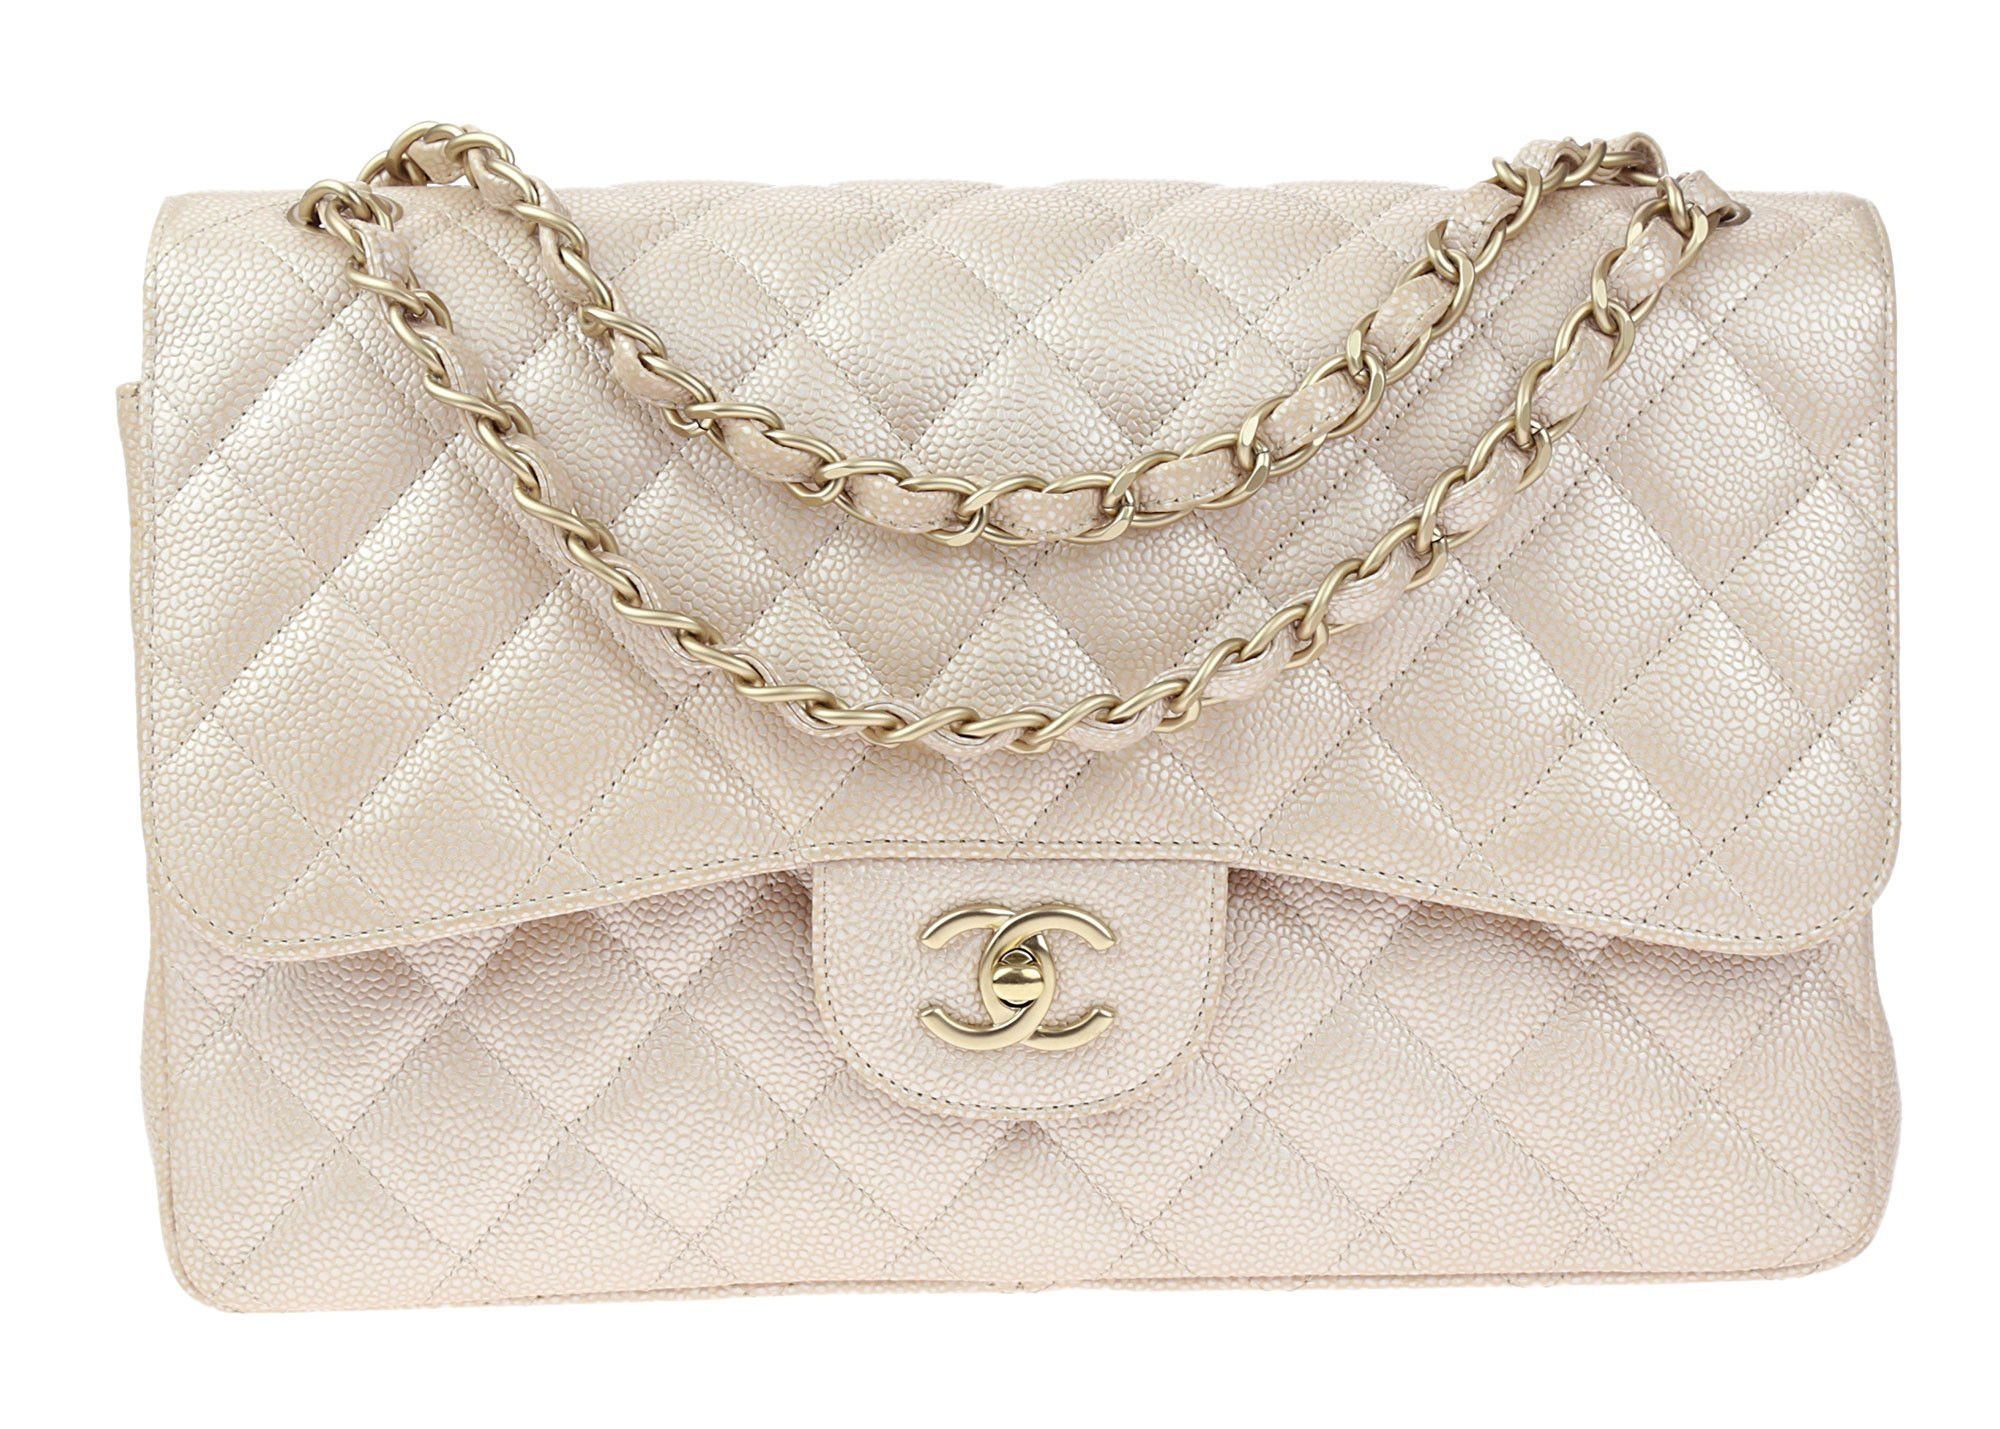 df5cc92b7de1 The double flap features a beige caviar leather with a pearl sheen and  diamond quilting with matte gold h. This Chanel Pearly ...